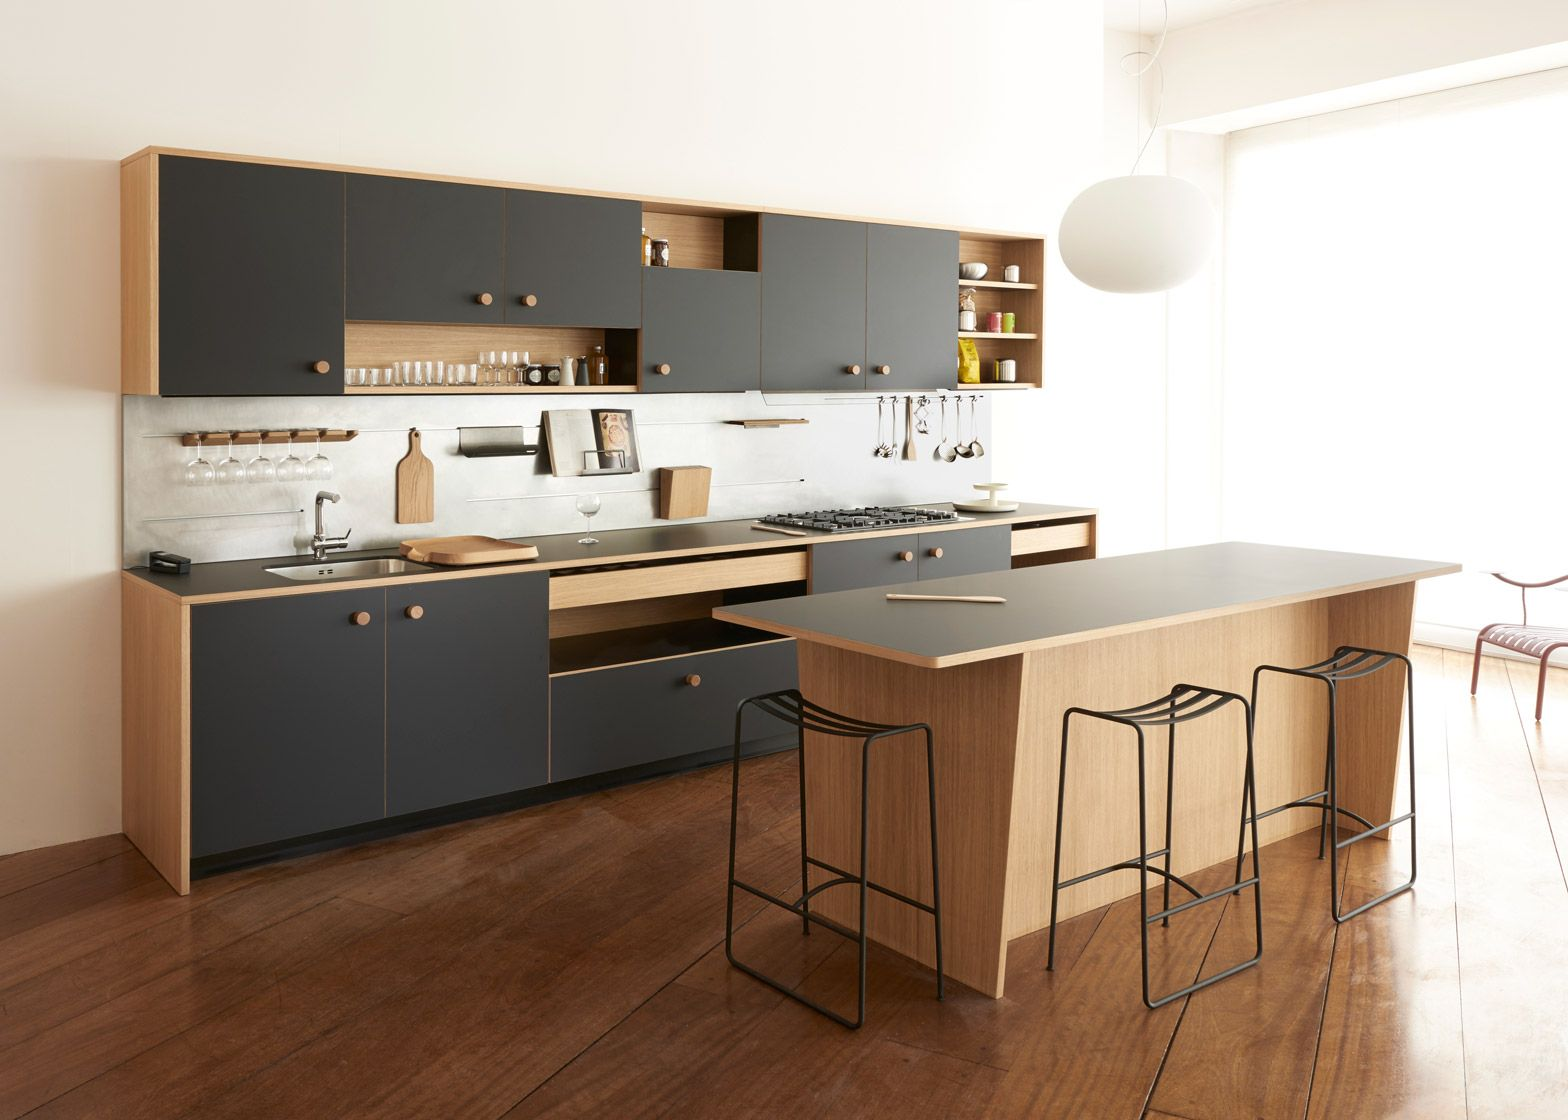 lepic kitchen design jasper morrison versatile schiffini wood laminate dezeen k chen kitchen. Black Bedroom Furniture Sets. Home Design Ideas